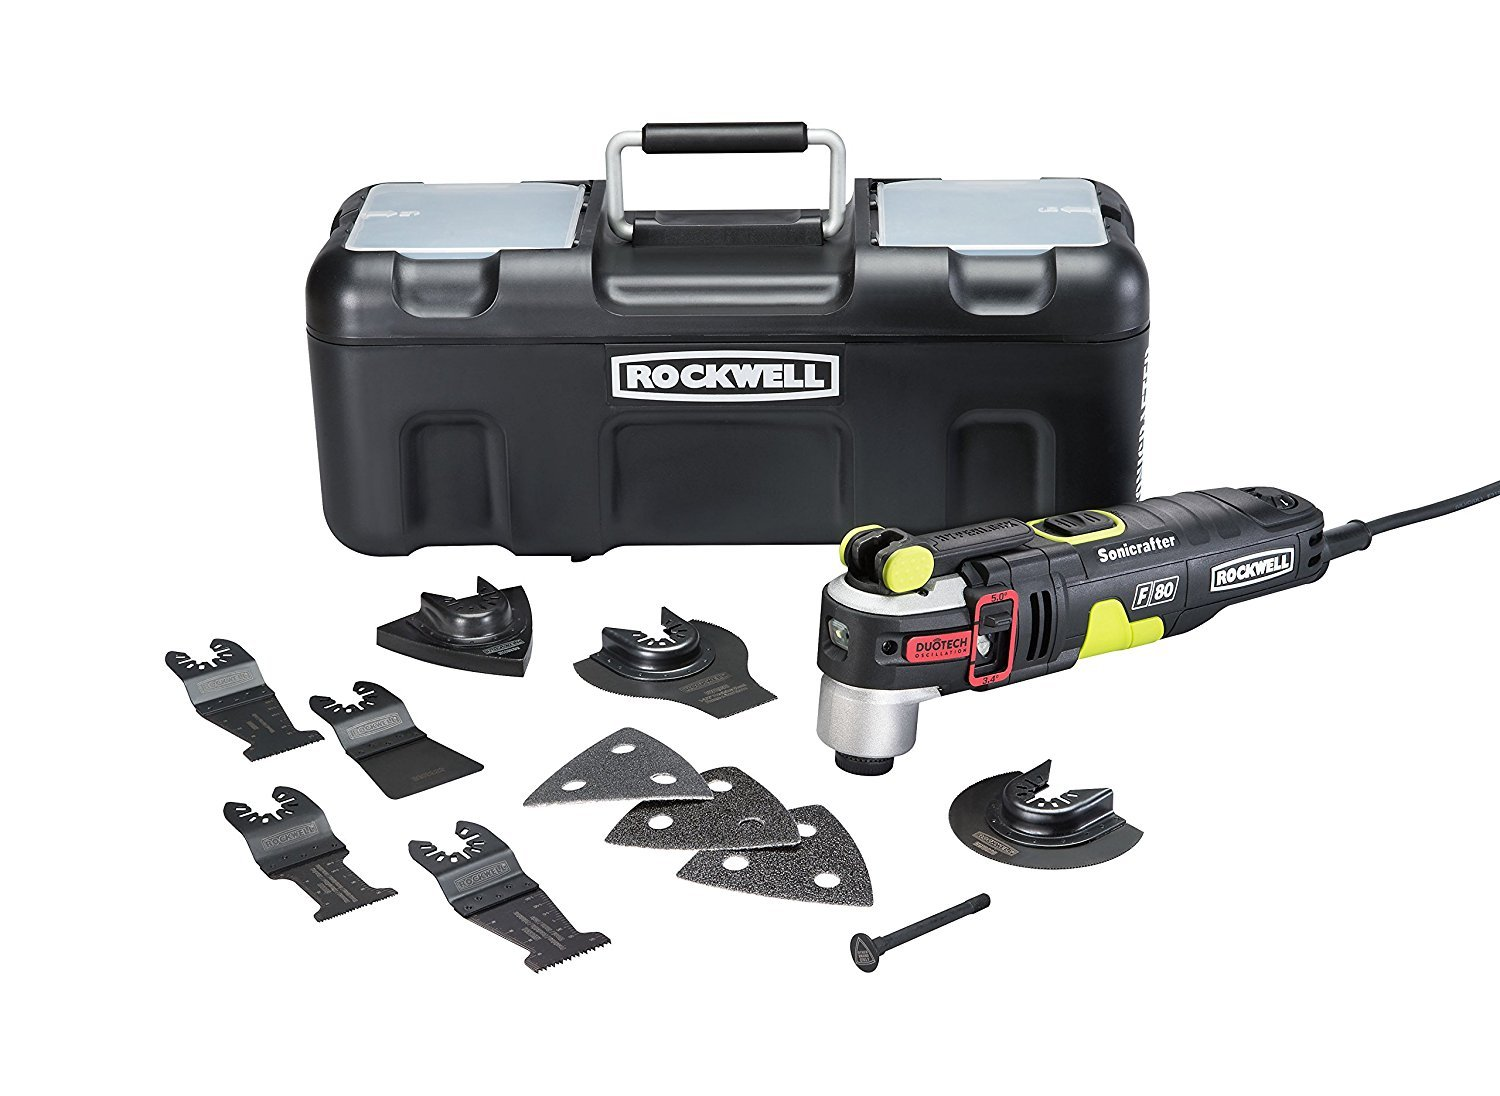 Rockwell RK5151K 4.2 Amp Sonicrafter F80 Oscillating Multi-Tool with Duotech Oscillation Angle Technology